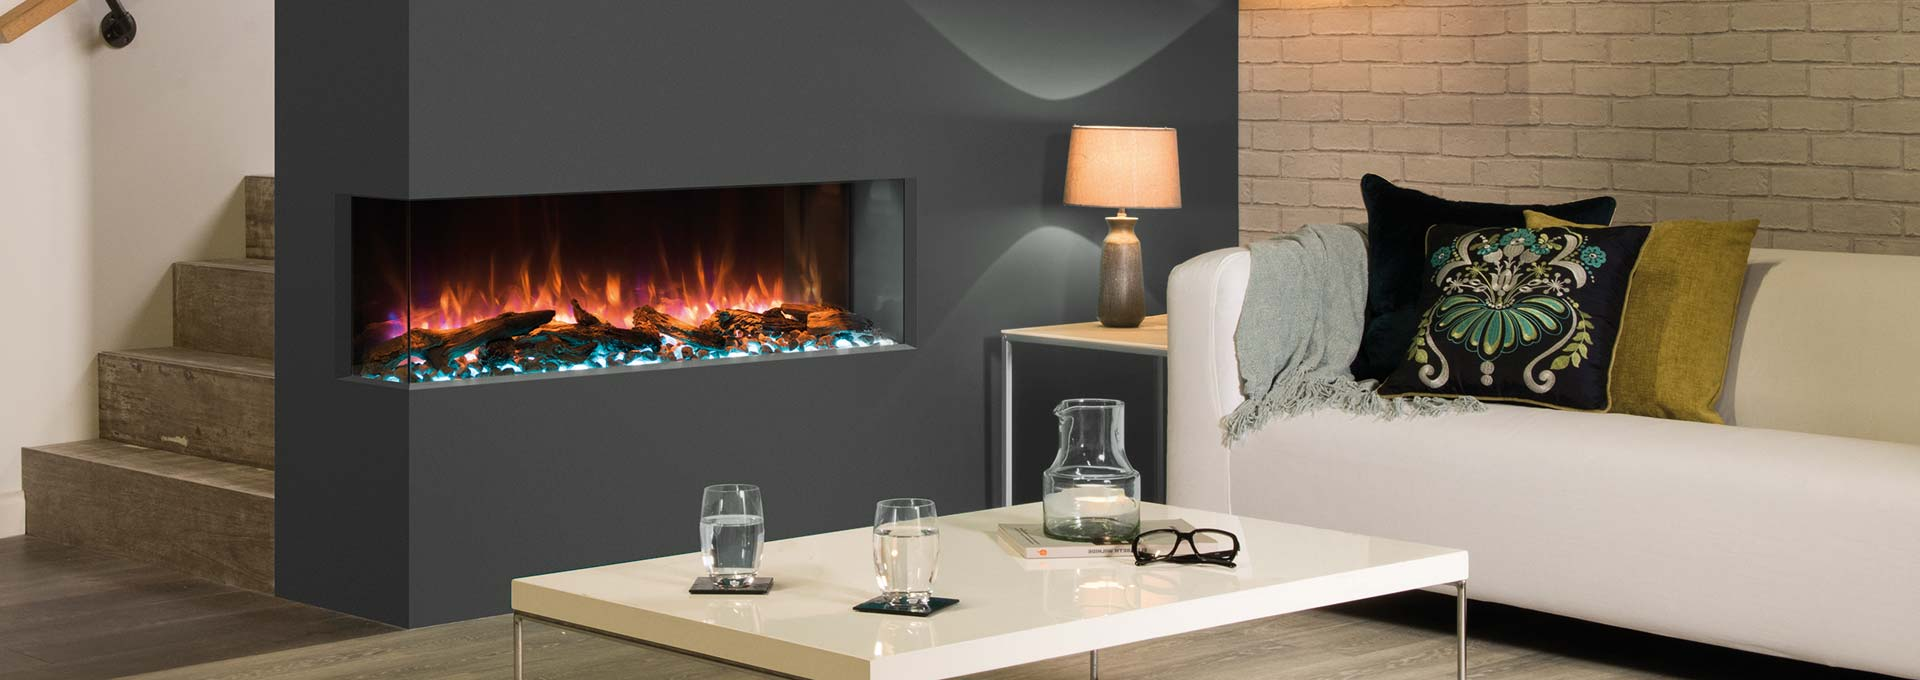 Top 11 Electric Fireplace Questions